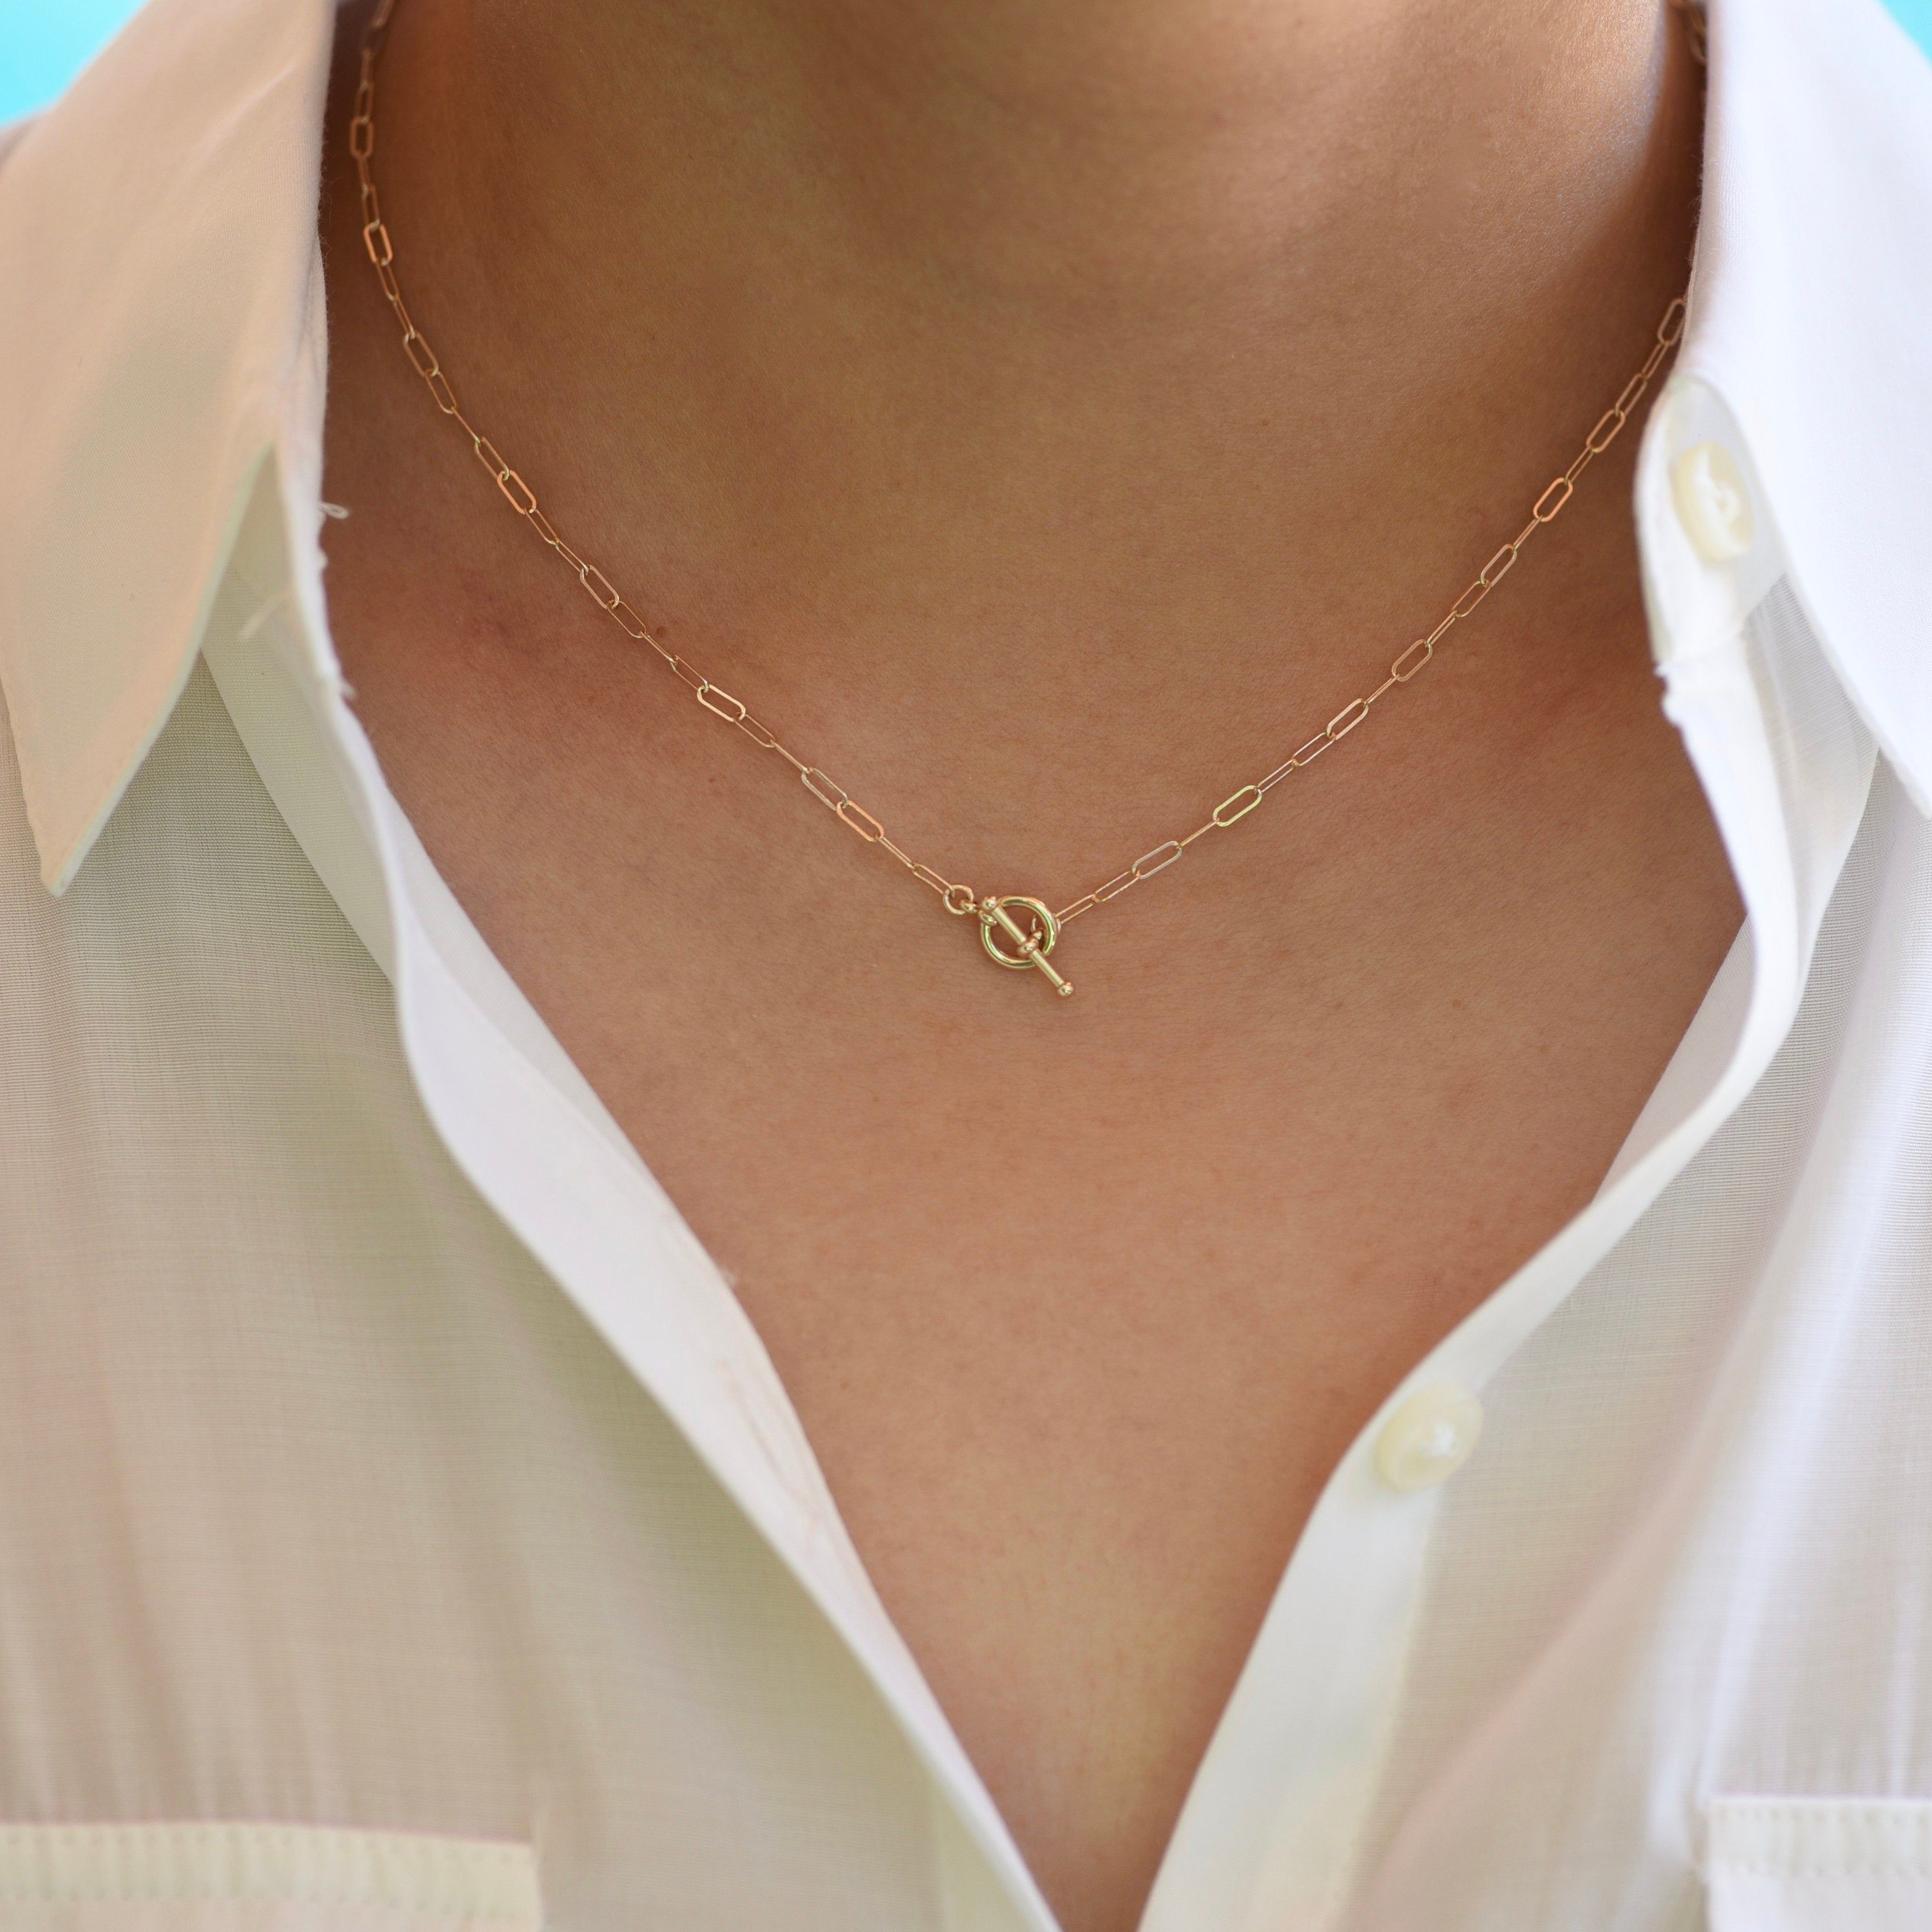 14k Gold Toggle Necklace Gold Paper Clip Chain Delicate Etsy In 2021 Girly Jewelry Delicate Necklace Delicate Gold Necklace